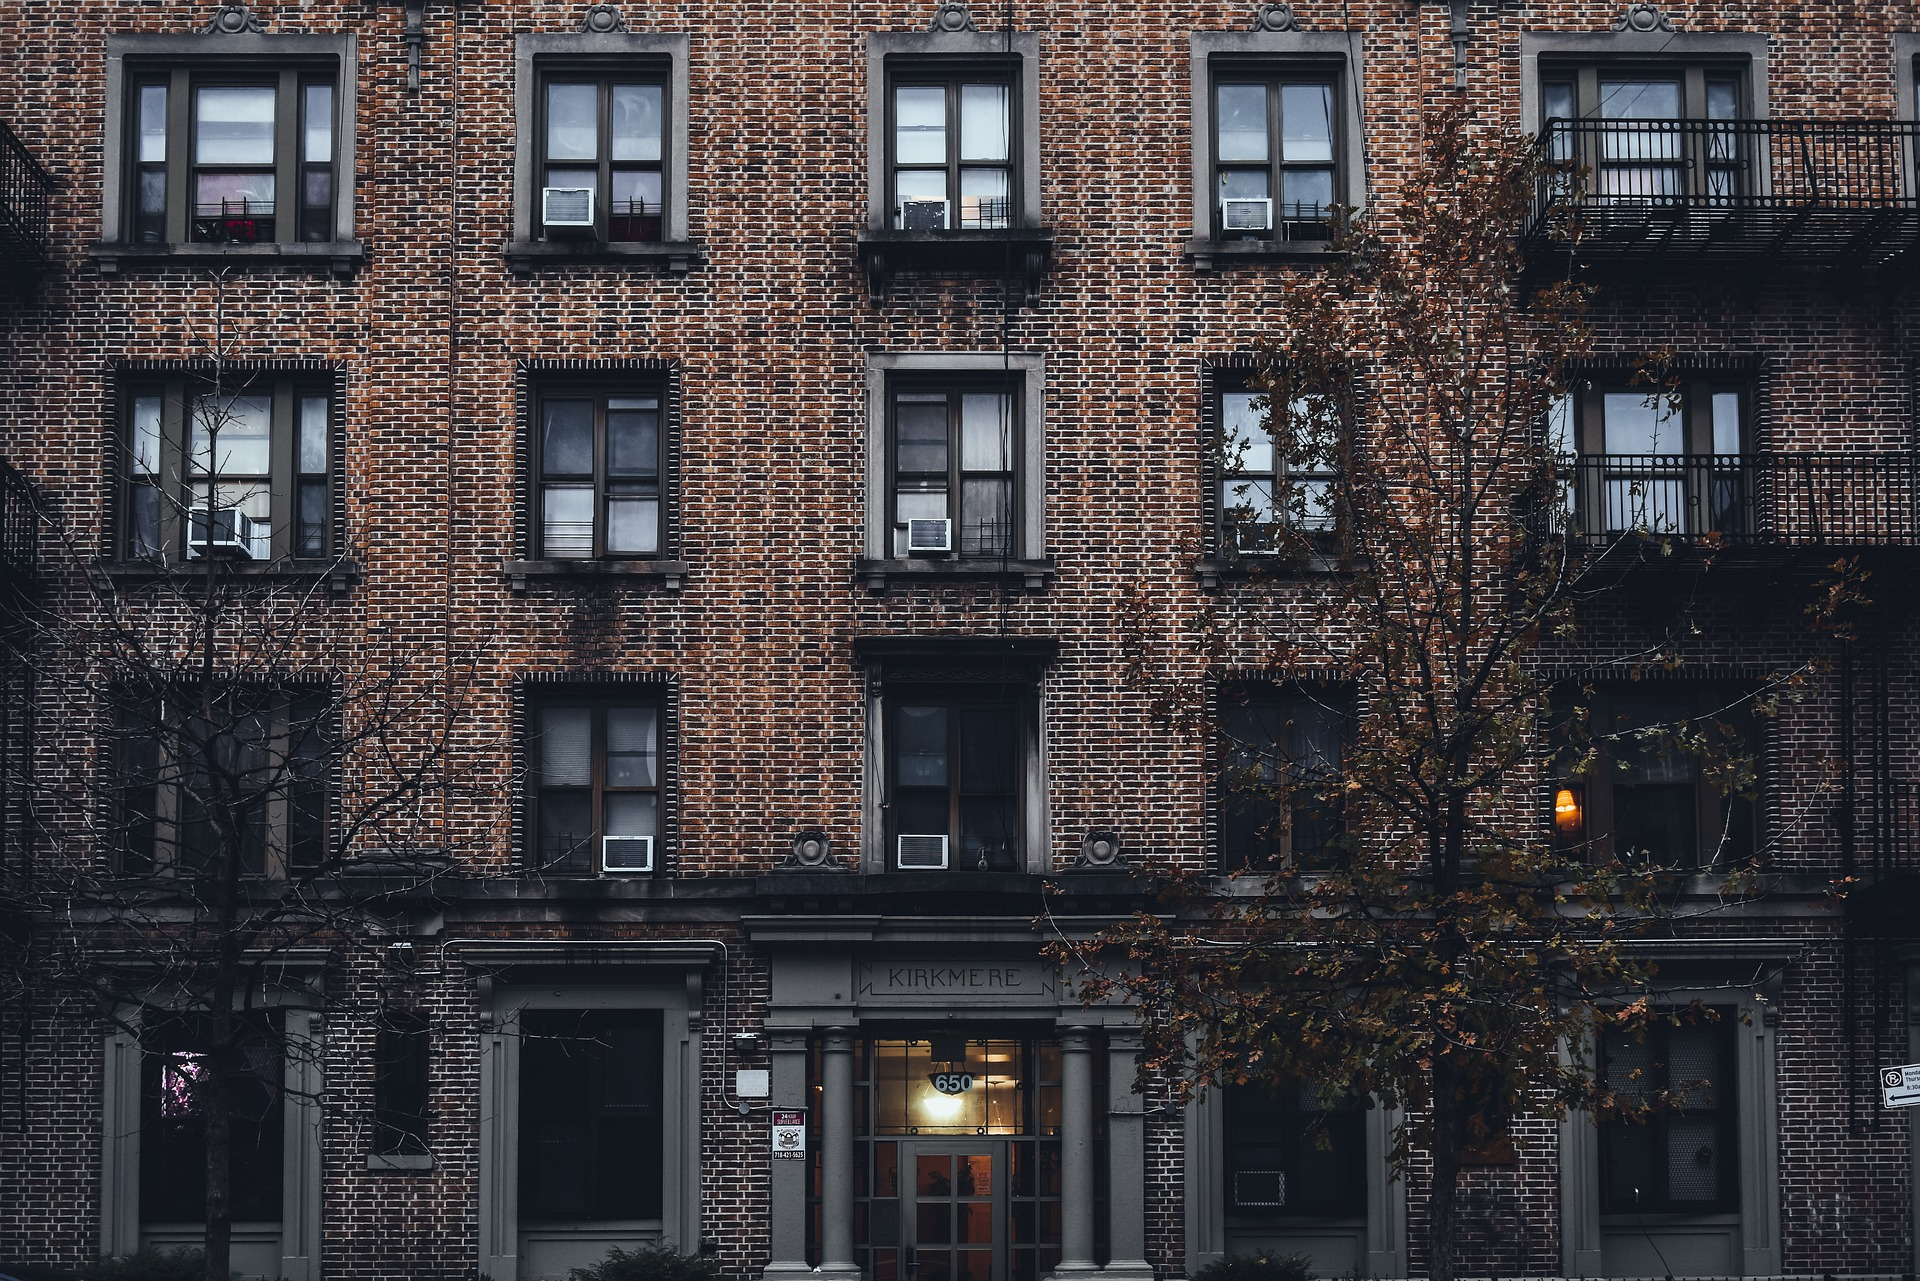 The Definitive Guide To The Housing Stability and Tenant Protection Act of 2019 in New York City